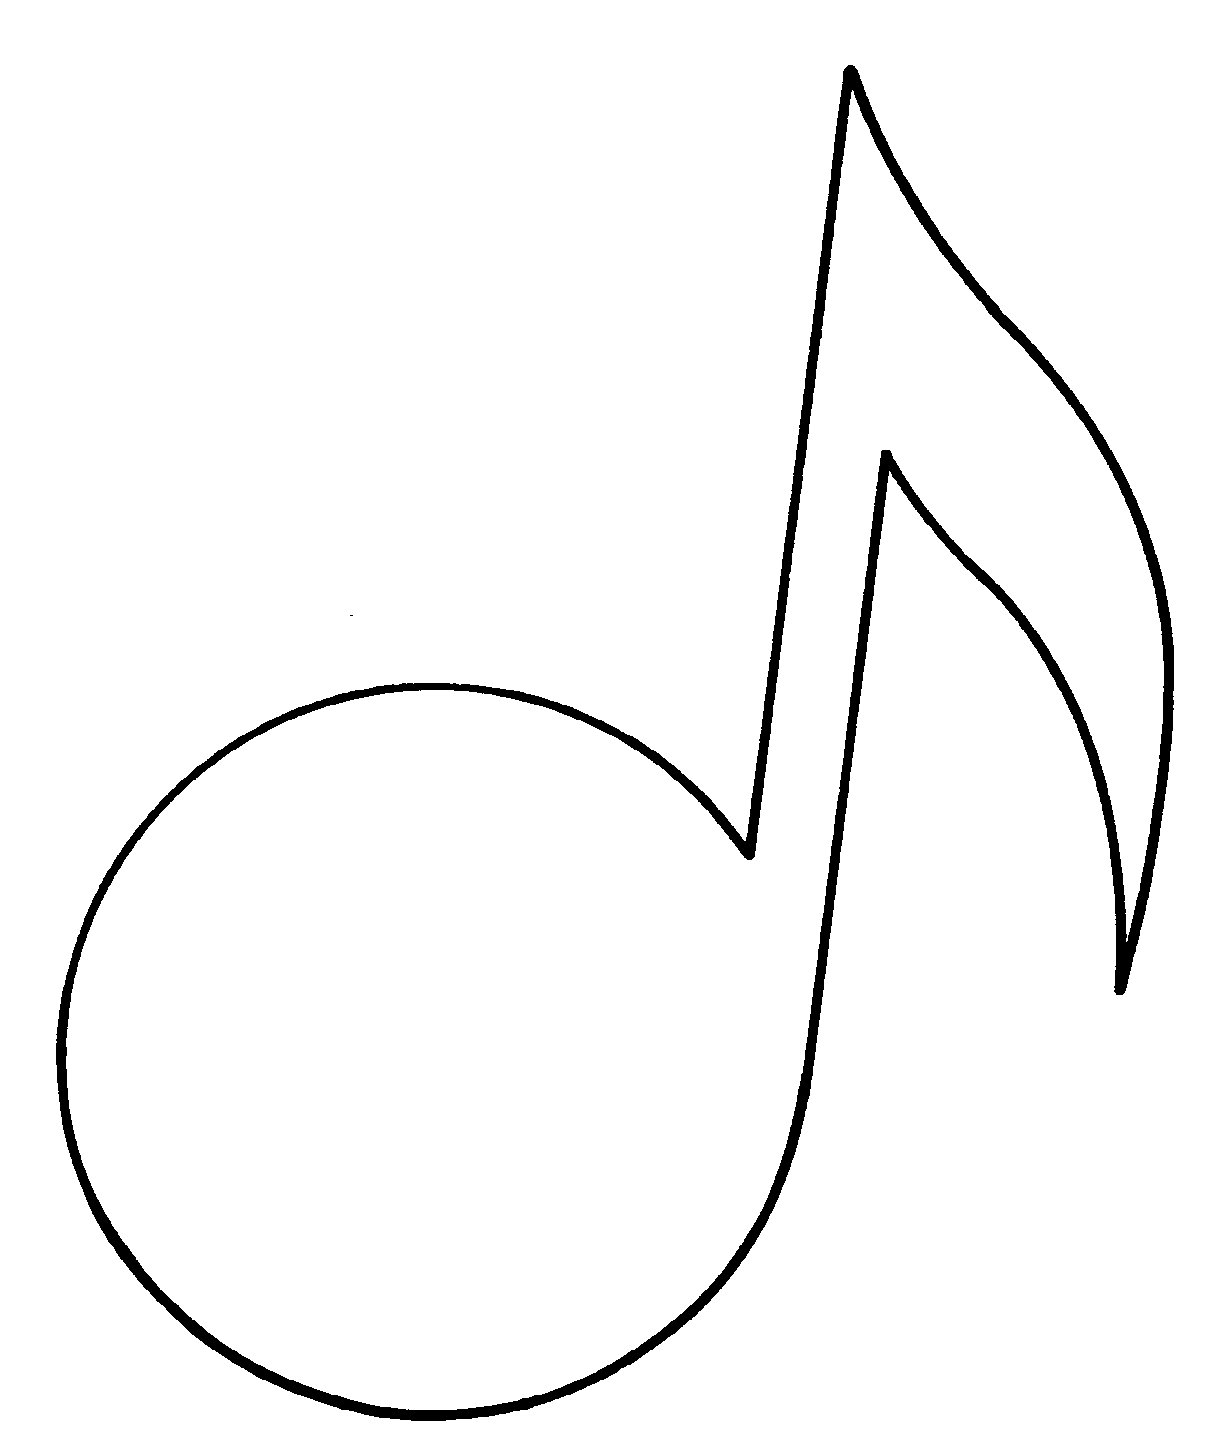 1232x1456 Eighth Note Outline